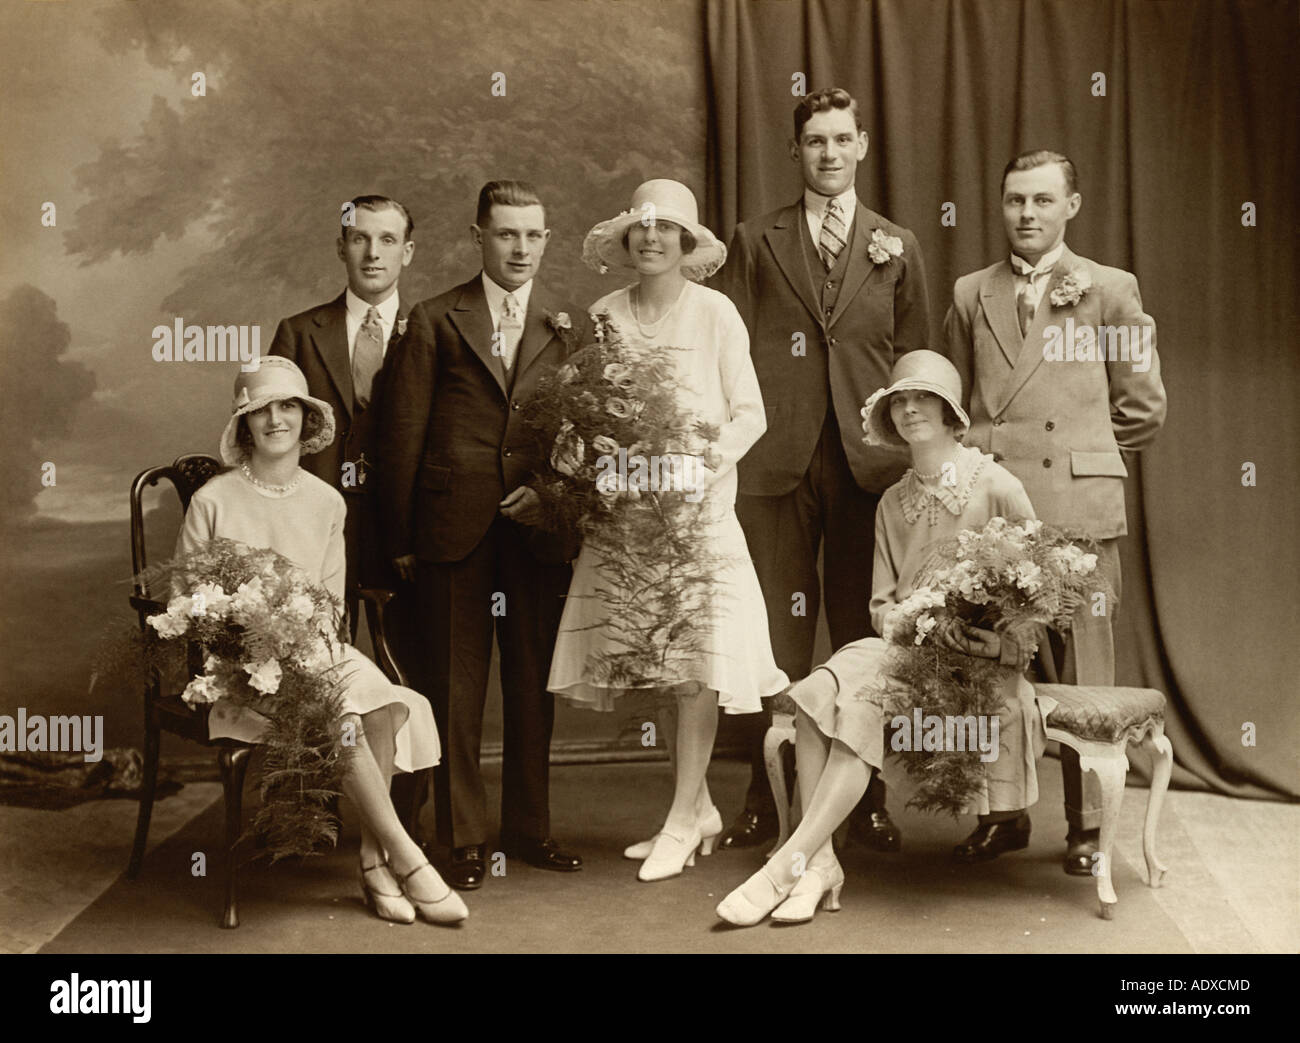 20s 1920s stock photos 20s 1920s stock images alamy 1920s wedding group with bride and groom by foulds and hibberd ltd uk stock junglespirit Gallery